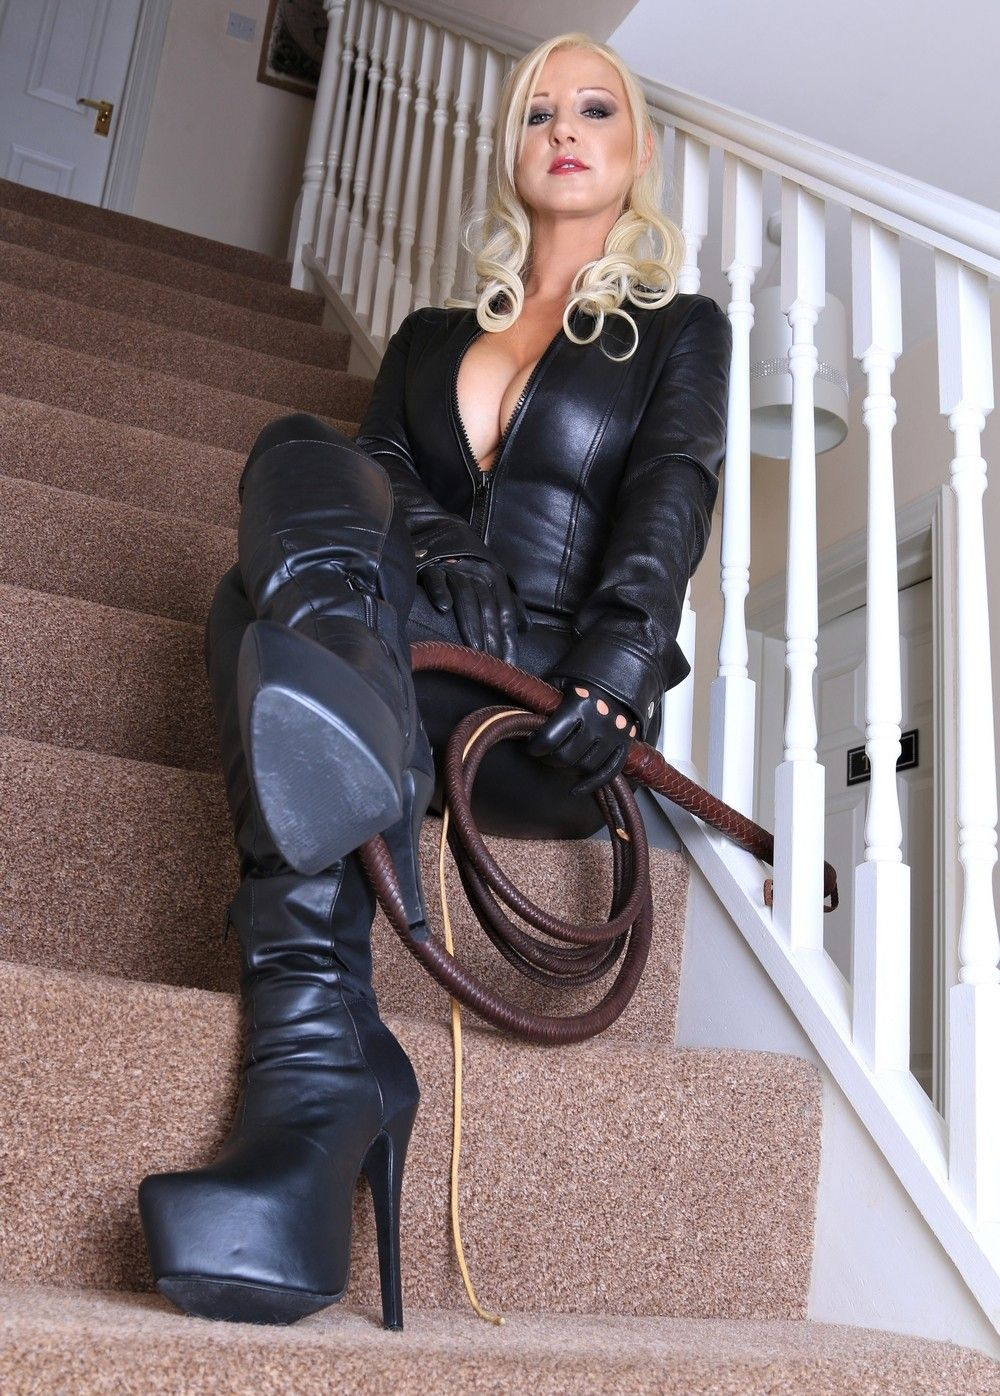 Search results for boot femdom femdom destiny